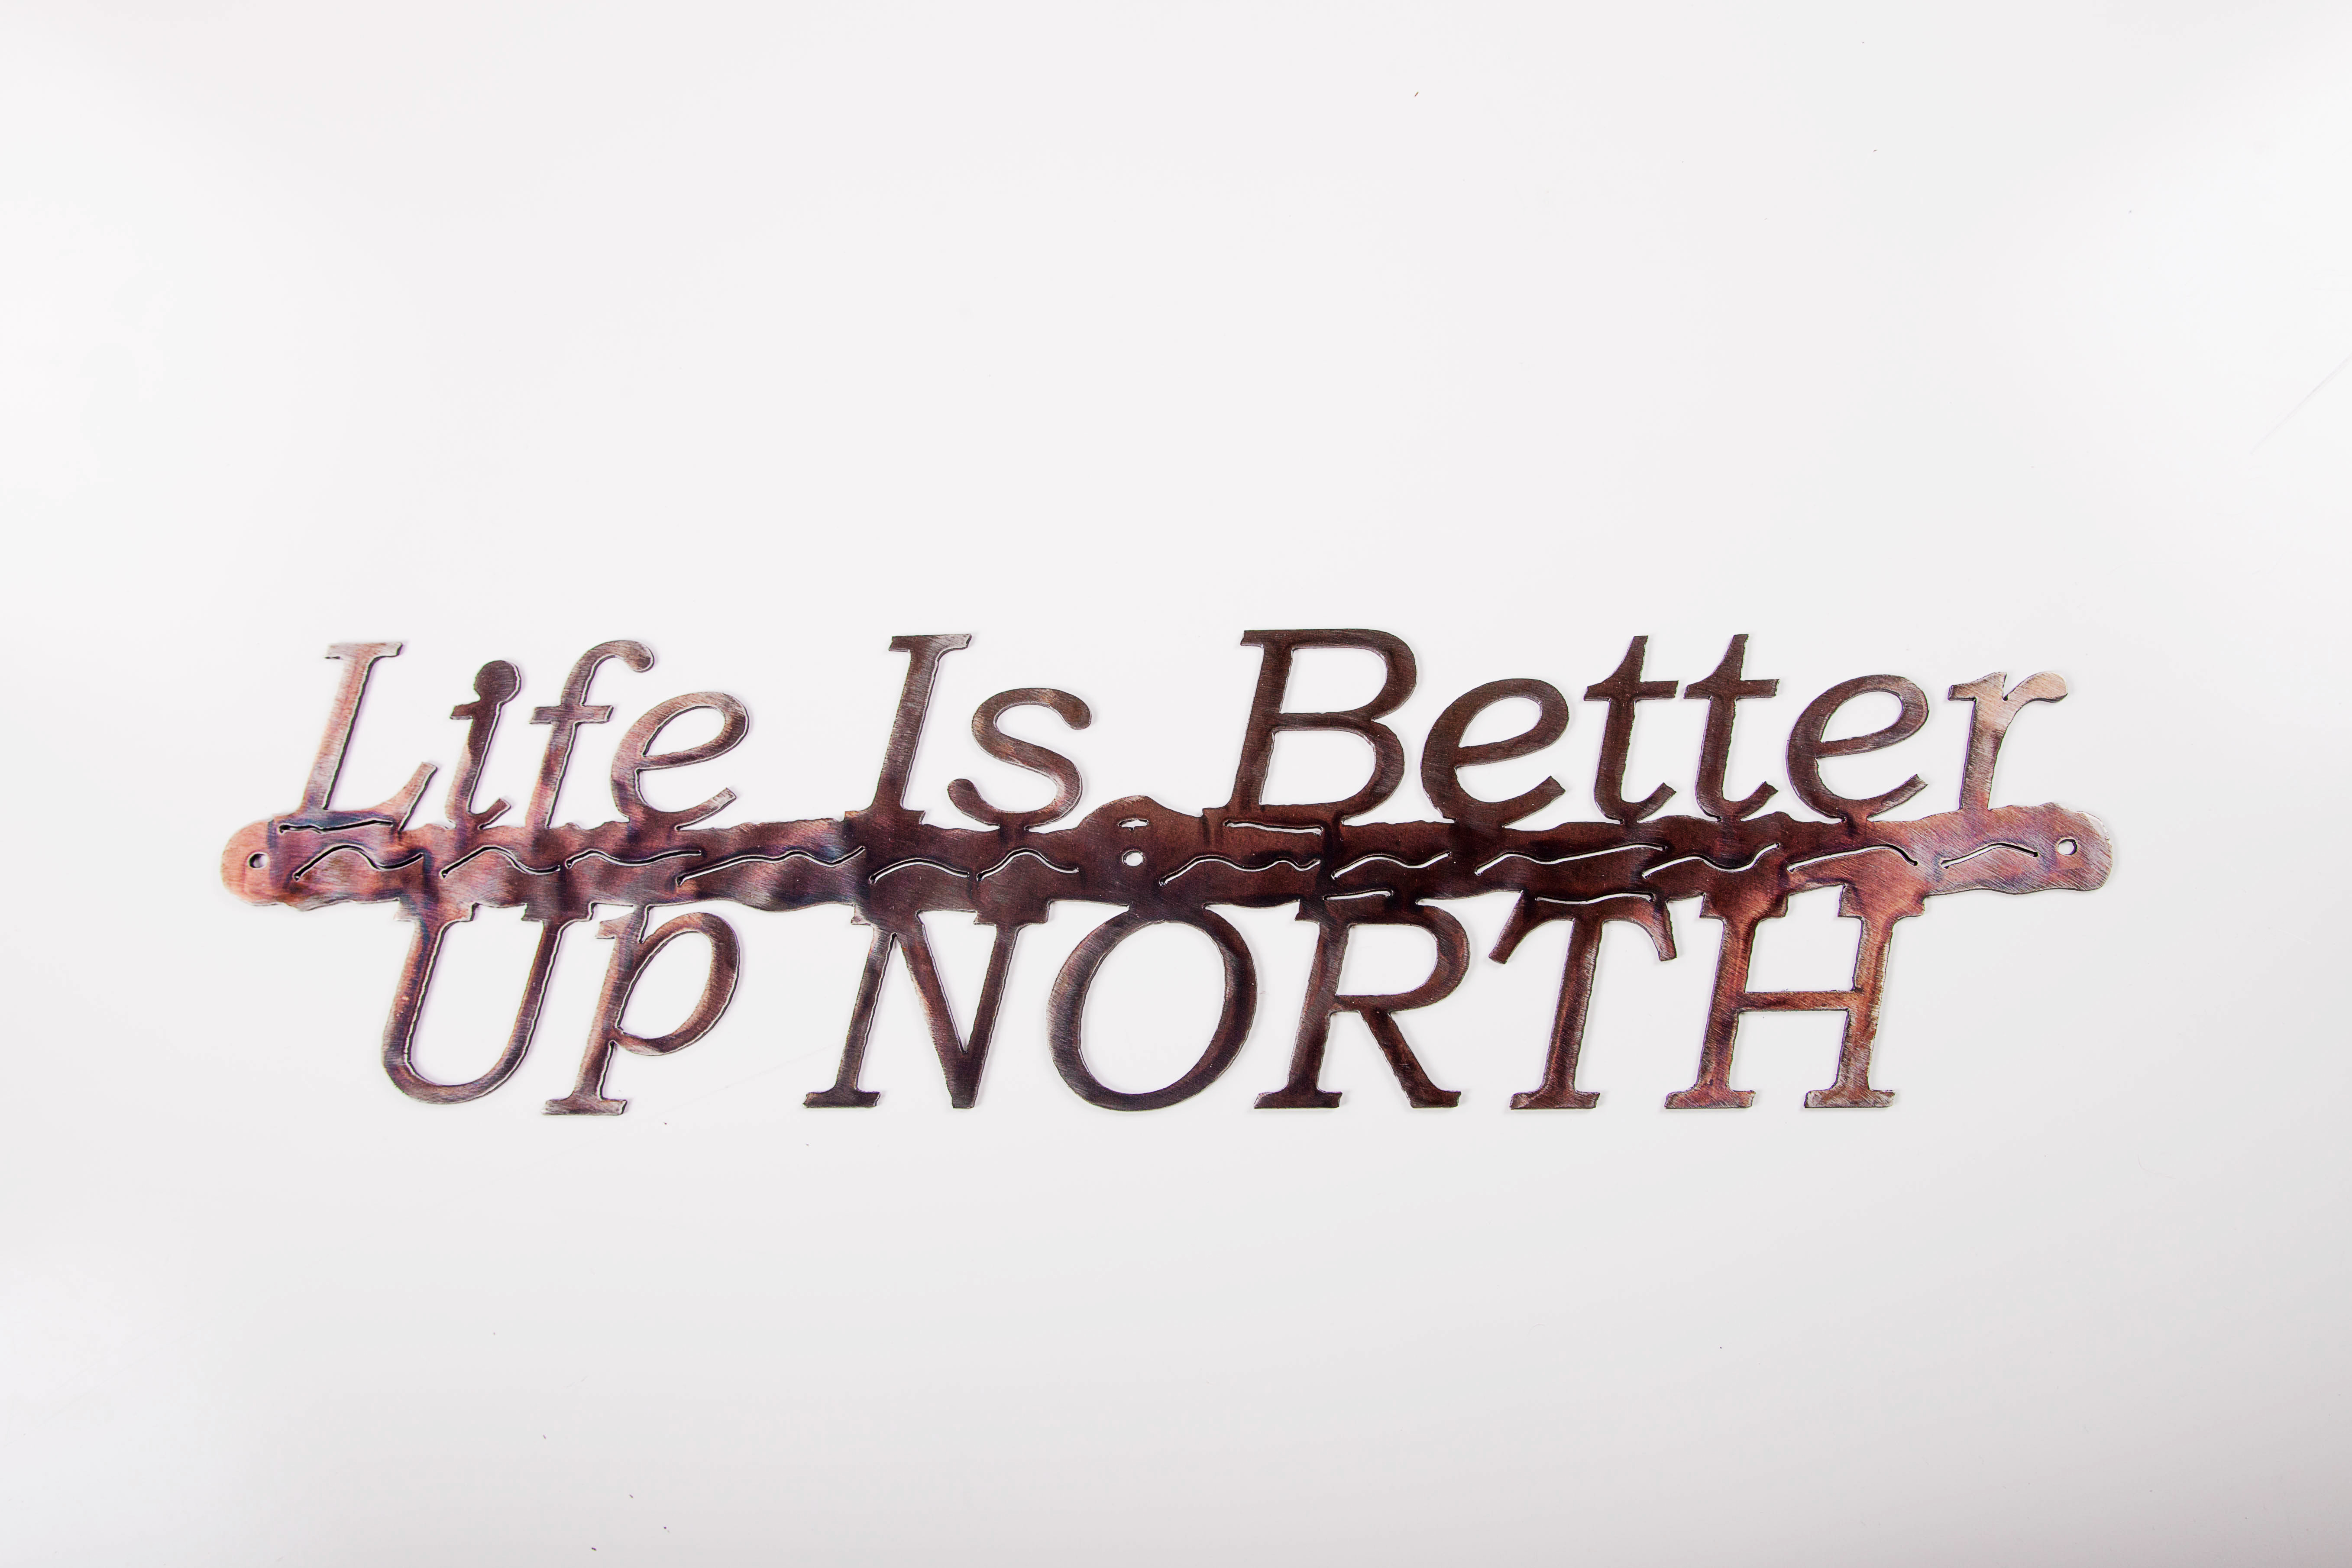 Life is Better Up North